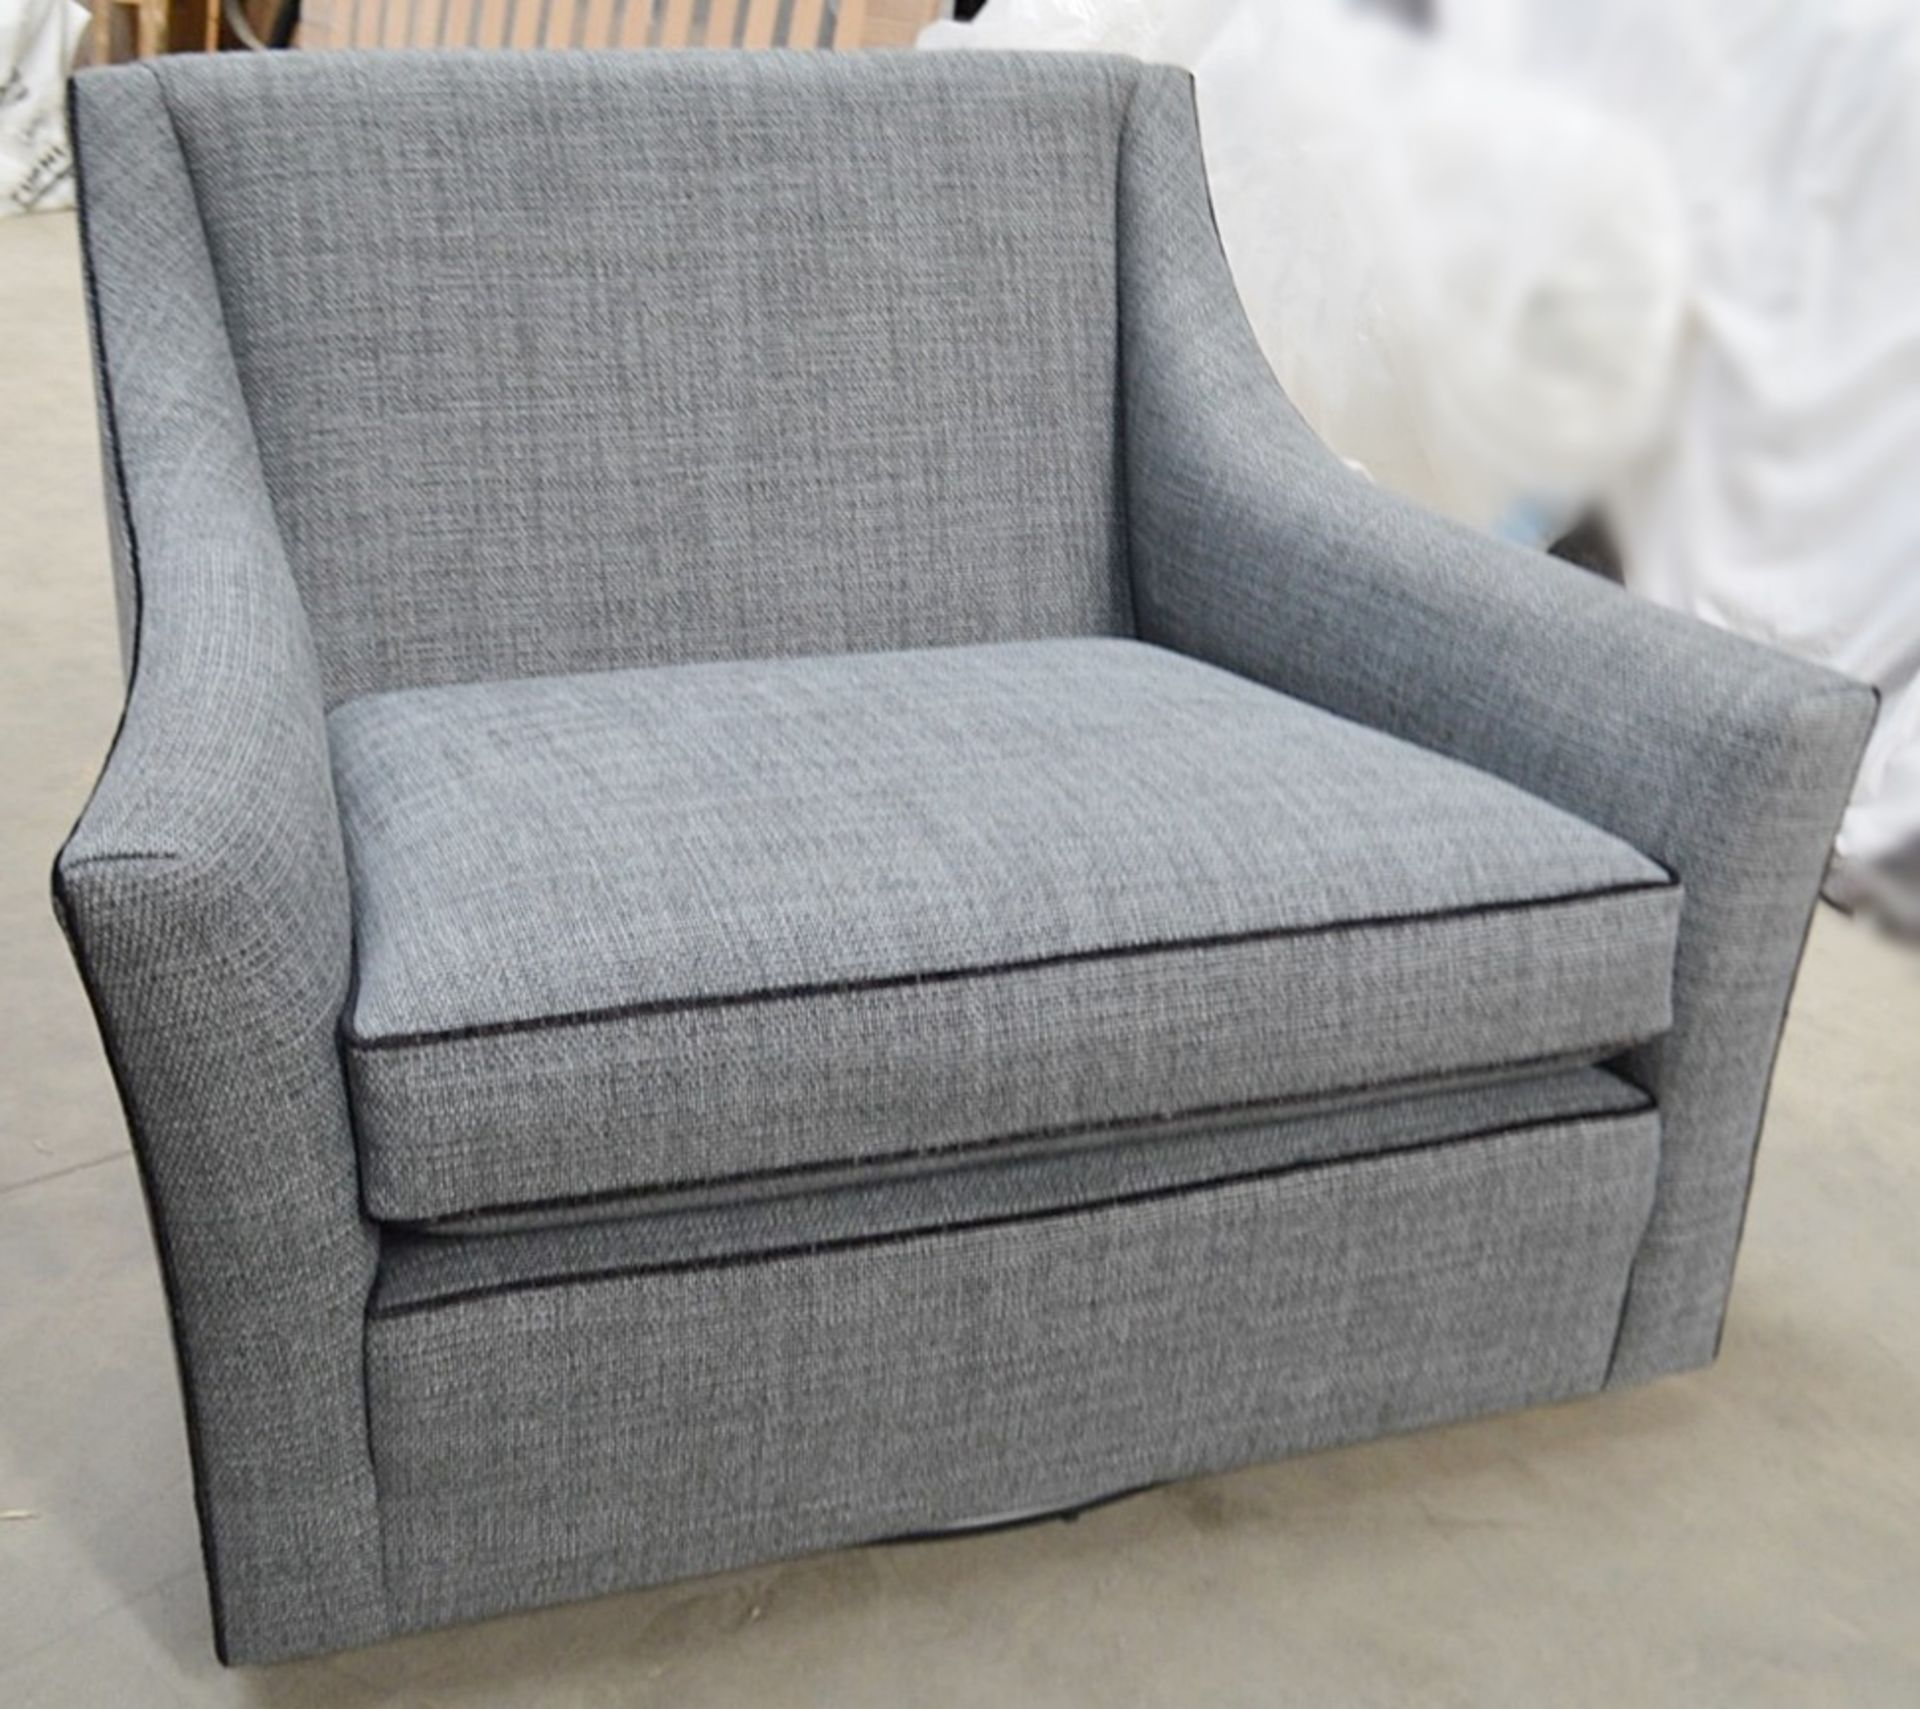 1 x DURESTA Hermitage Swivel Chair Upholstered In A Light Grey Premium Woven Fabric - RRP £3,729 - Image 7 of 7